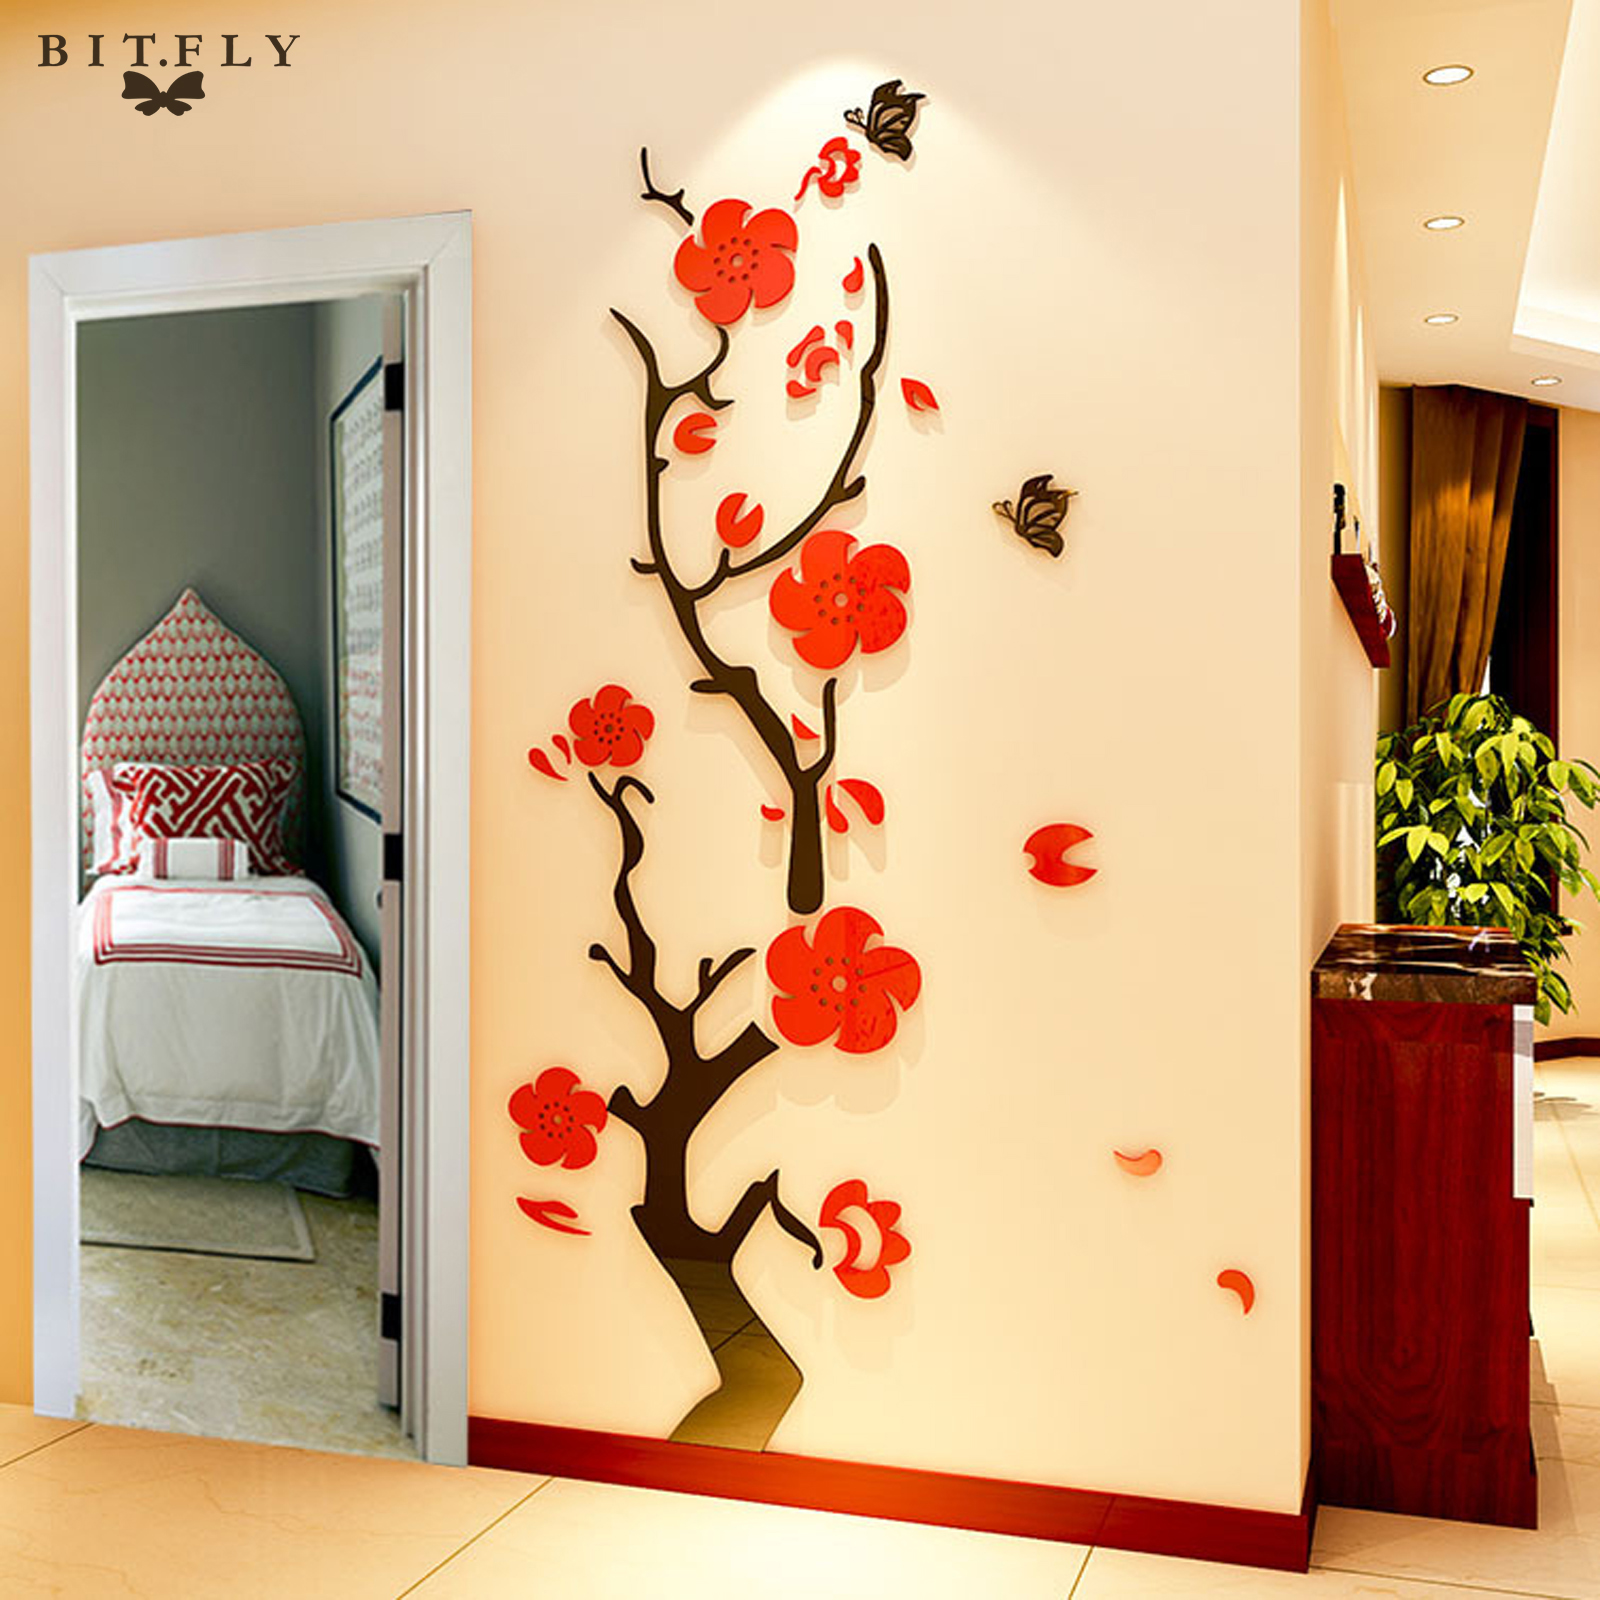 Hot sale 3d removable flowers tree arcylic wall sticker - Removable wall stickers living room ...